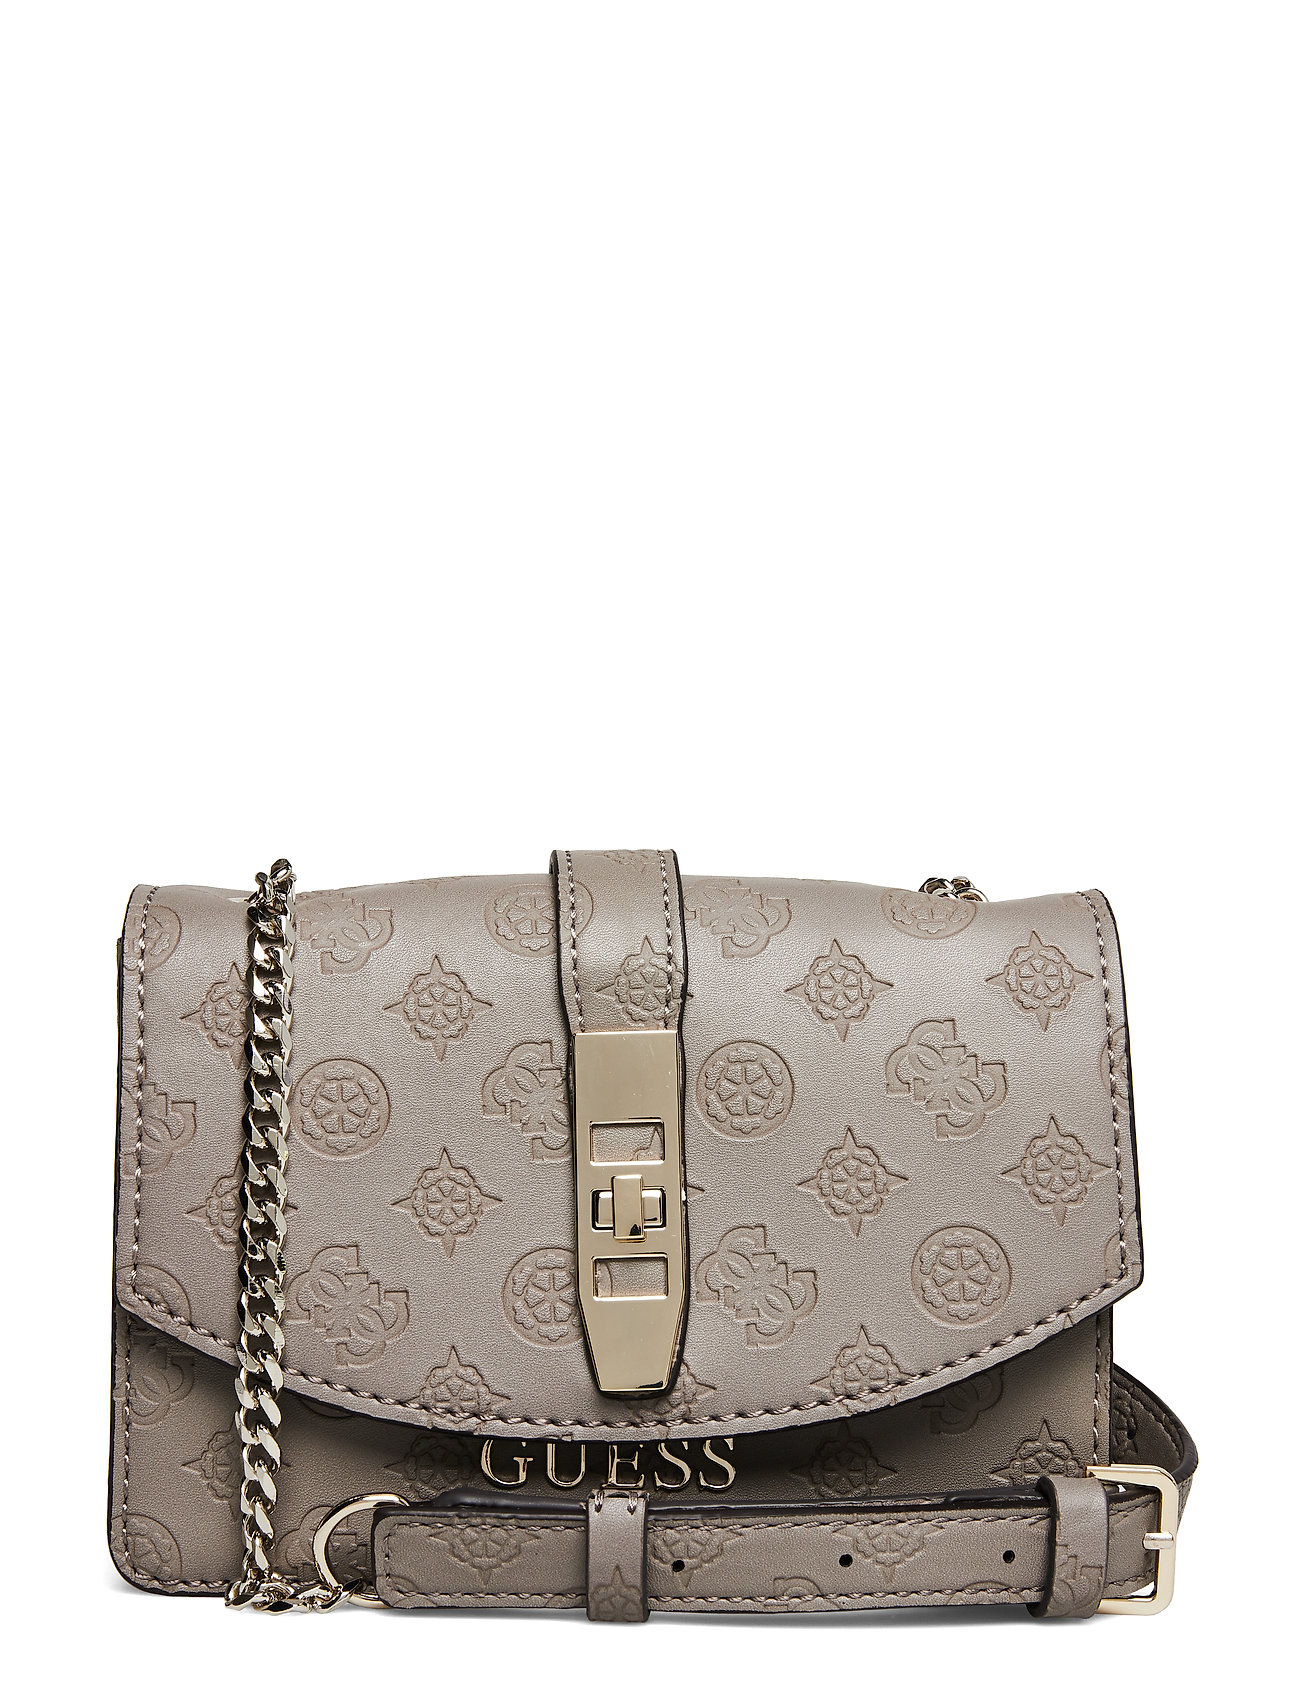 GUESS Peony Classic Mini Xbody Flap Bags Small Shoulder Bags/crossbody Bags Beige GUESS